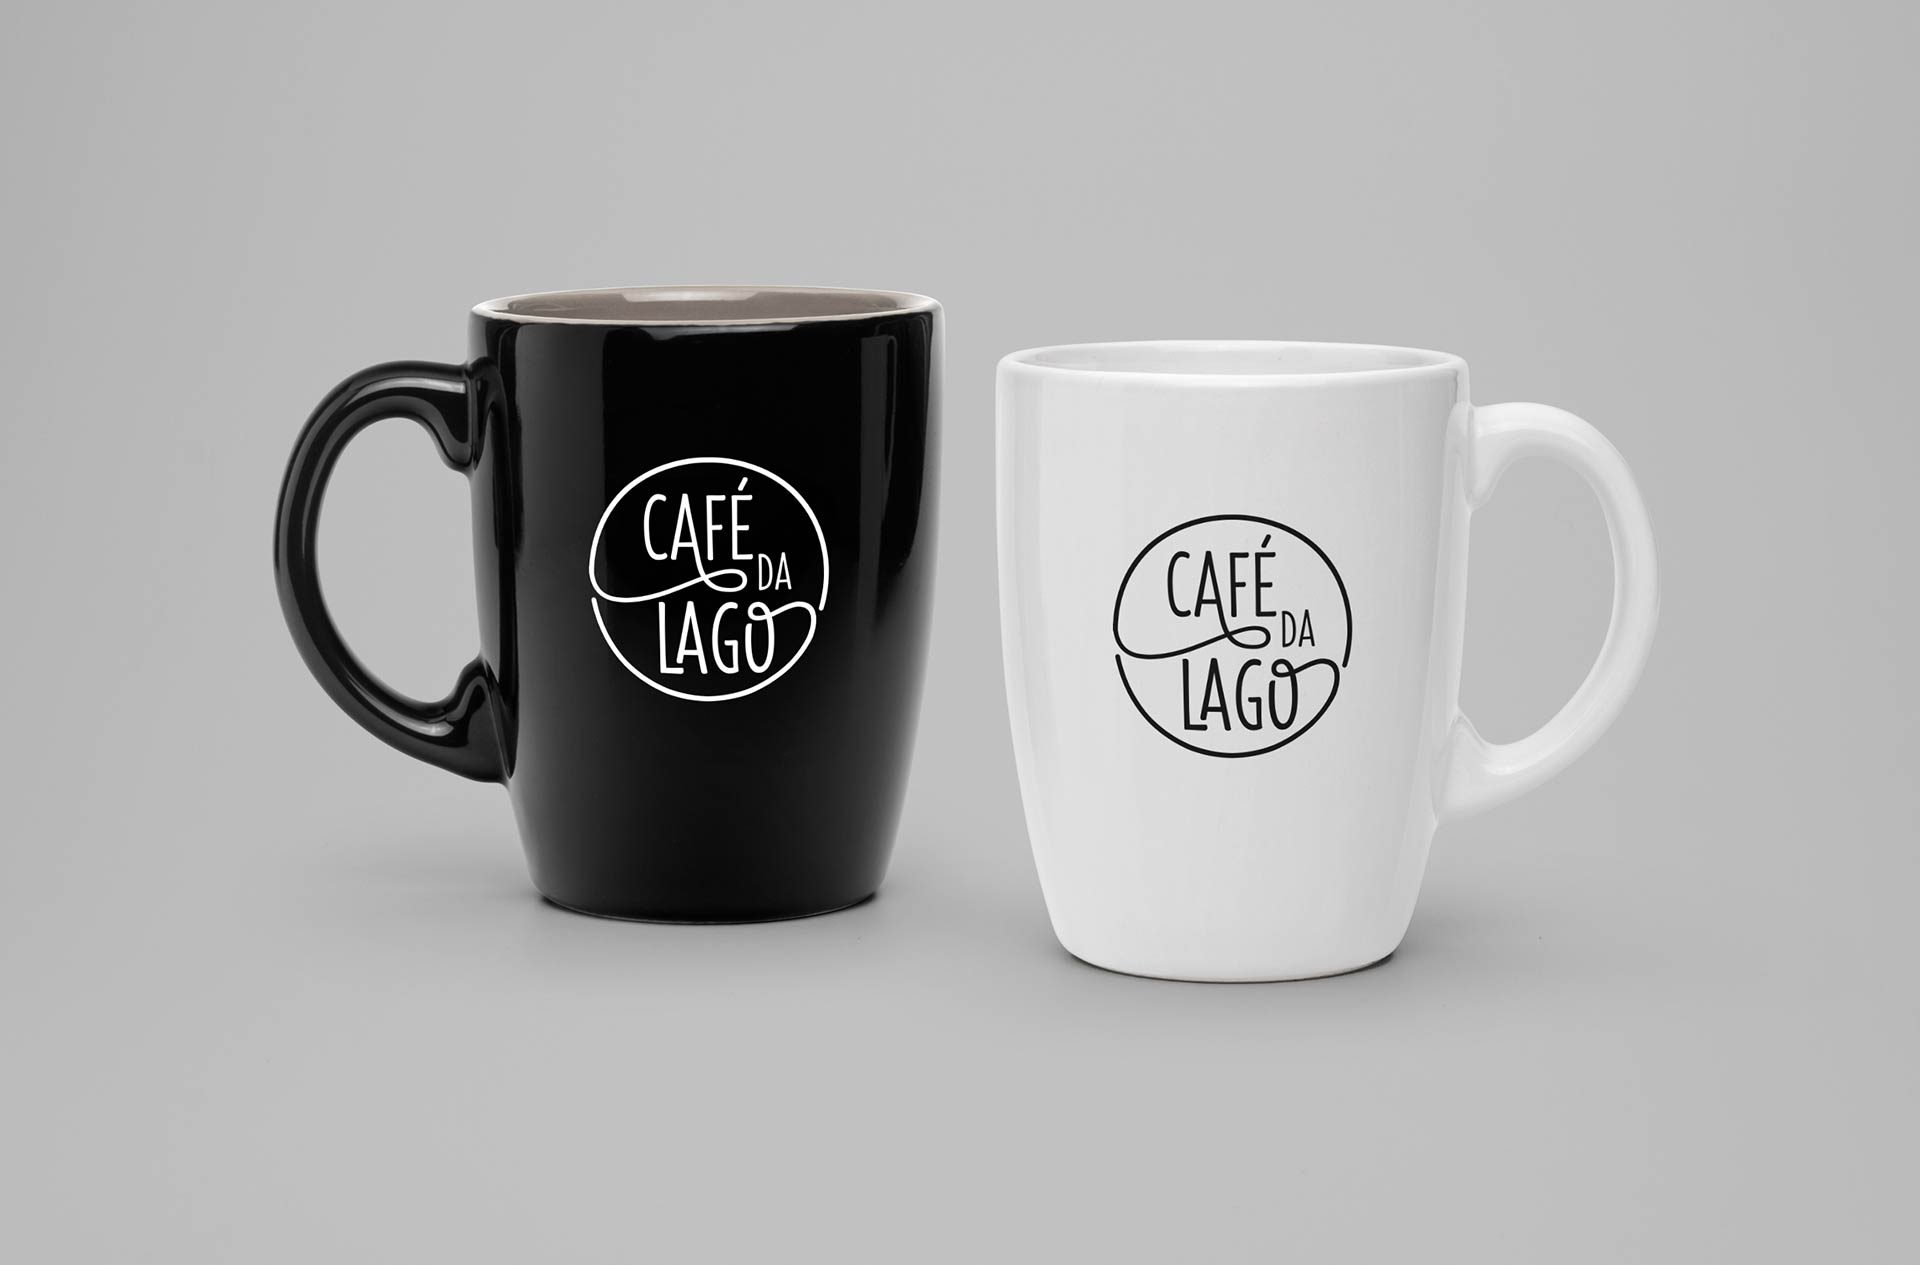 Cafe da Lago Mugs